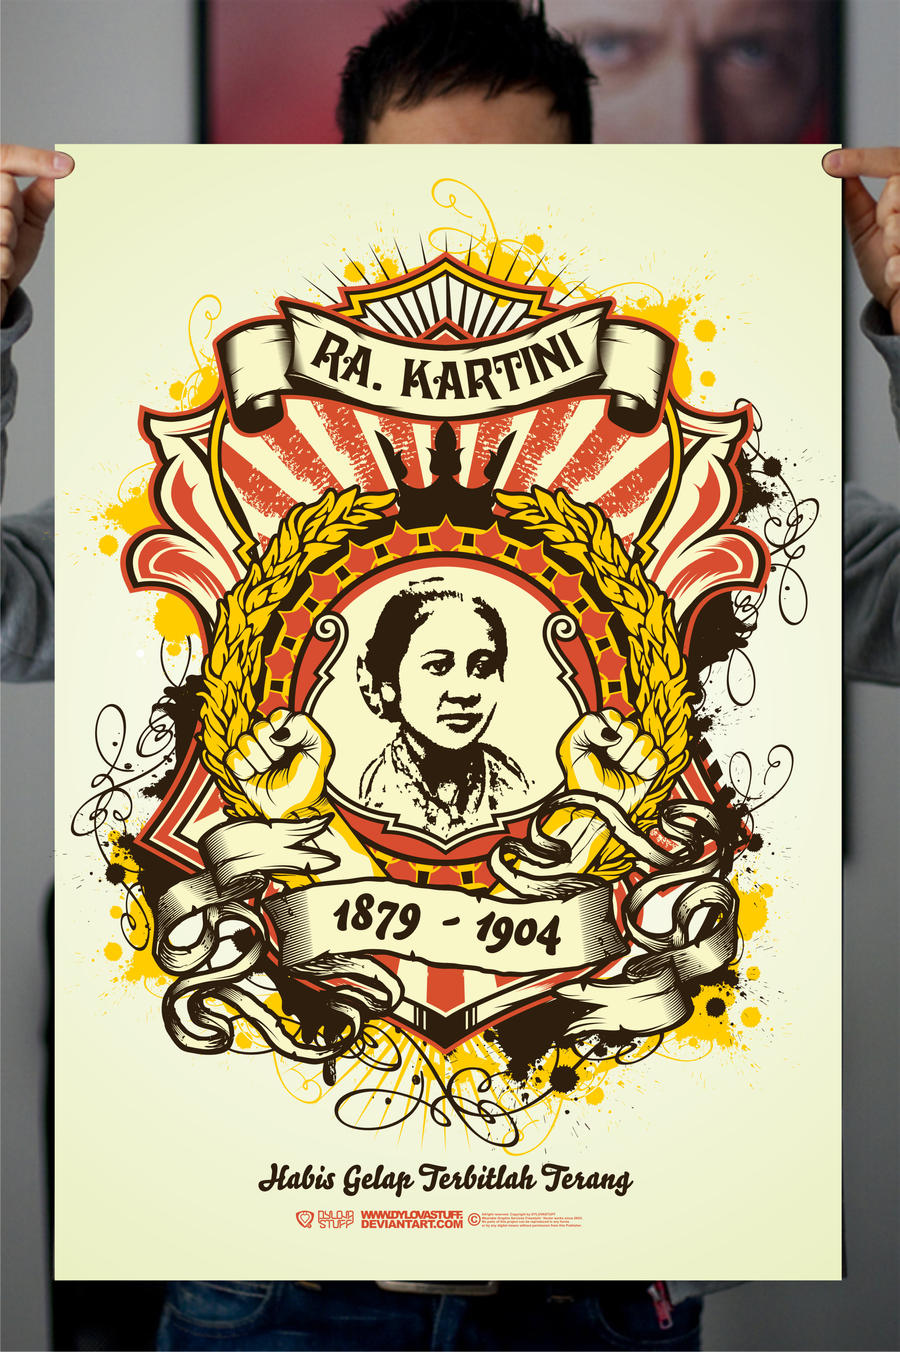 RA. KARTINI 1879 - 1904 by dylovastuff